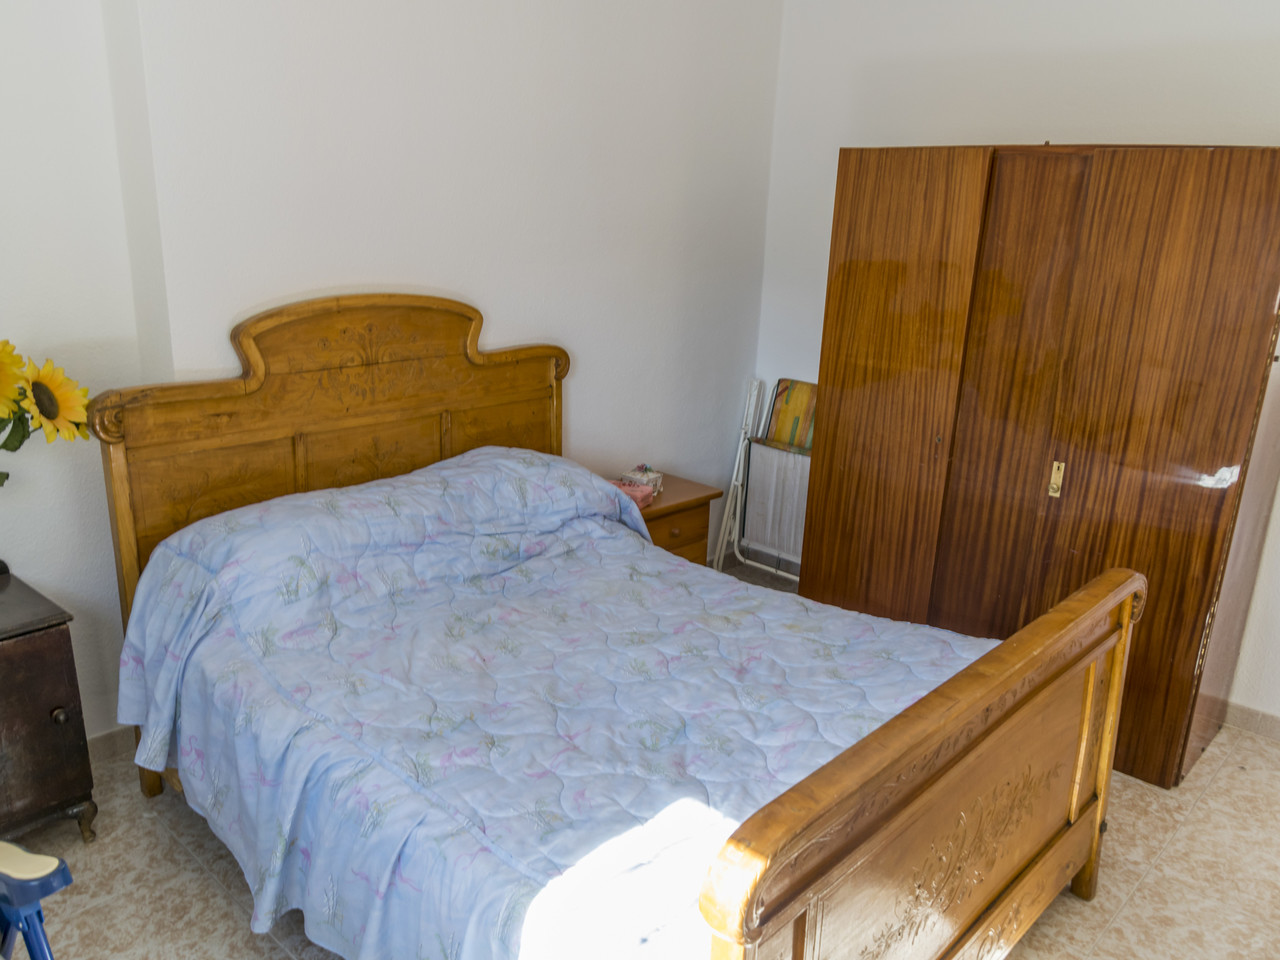 Propery For Sale in Turre, Spain image 11